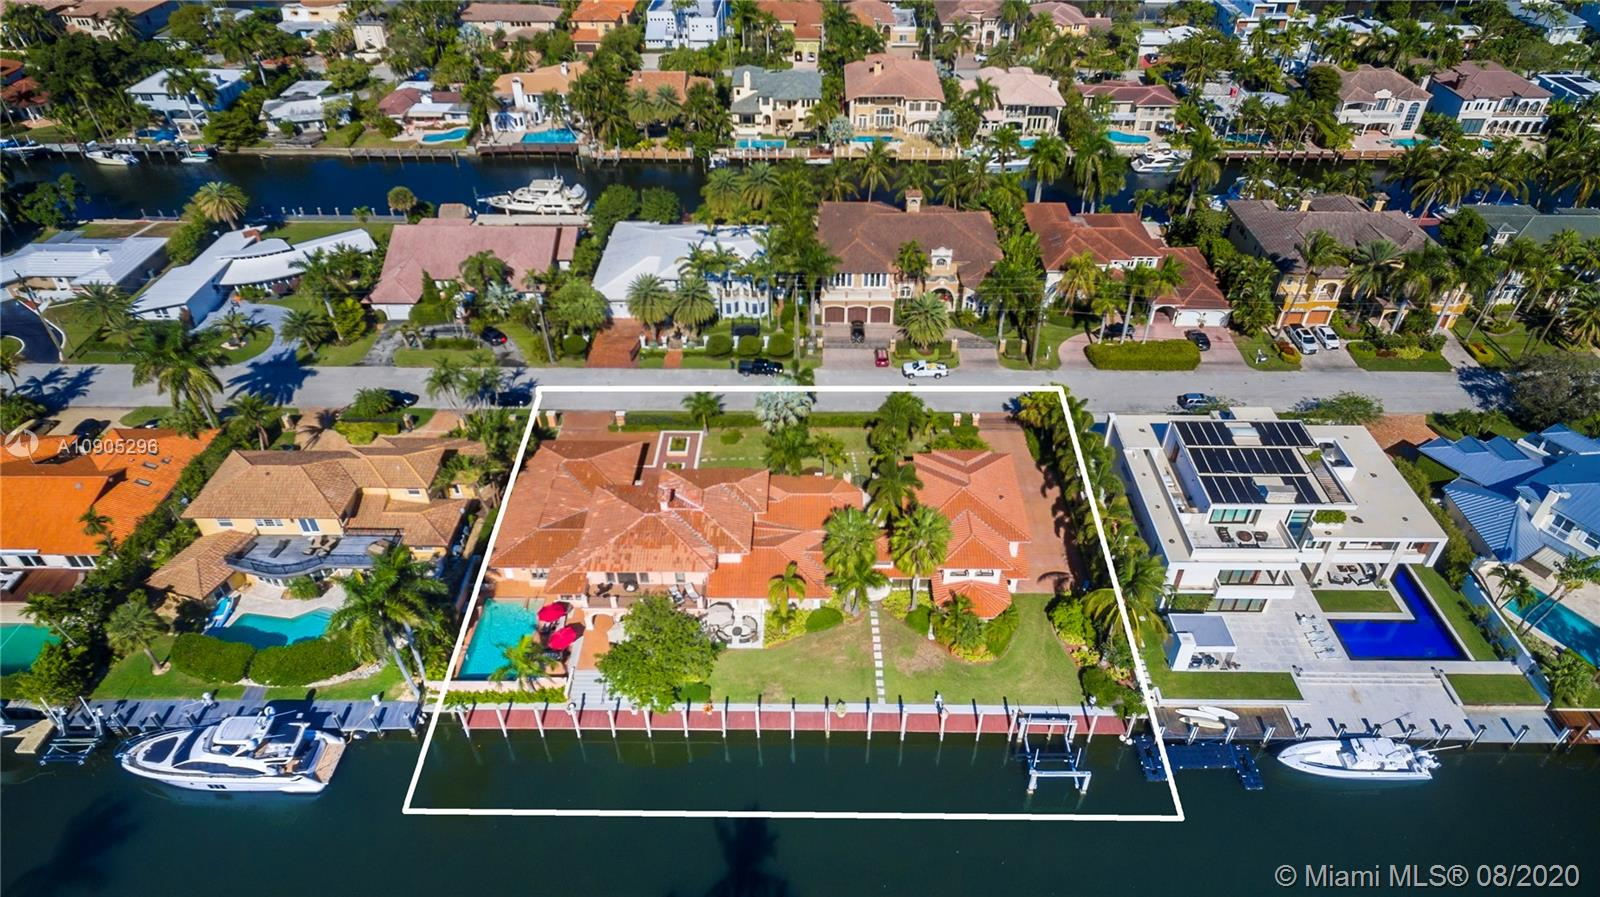 Large sprawling estate in coveted Seven Isles in Fort Lauderdale. Sitting on 200 ft of deep waterfrontage this property can be split into 2 lots. Amazing development opportunity! With a 26,024 square feet, this Mediterranean home boasts 8,000+ square feet of interior square footage. Located just minutes from the inlet, this location is truly priceless! This estate is gated with double entrances, features a large split floorplan, lush greenery, large chef's kitchen, a library and multiple spaces to entertain including a grand backyard. This property also features a guest house, private dock and boat lift with easy access as it's located only a few lots from the wide-open water. Don't miss this opportunity in this amazing location!